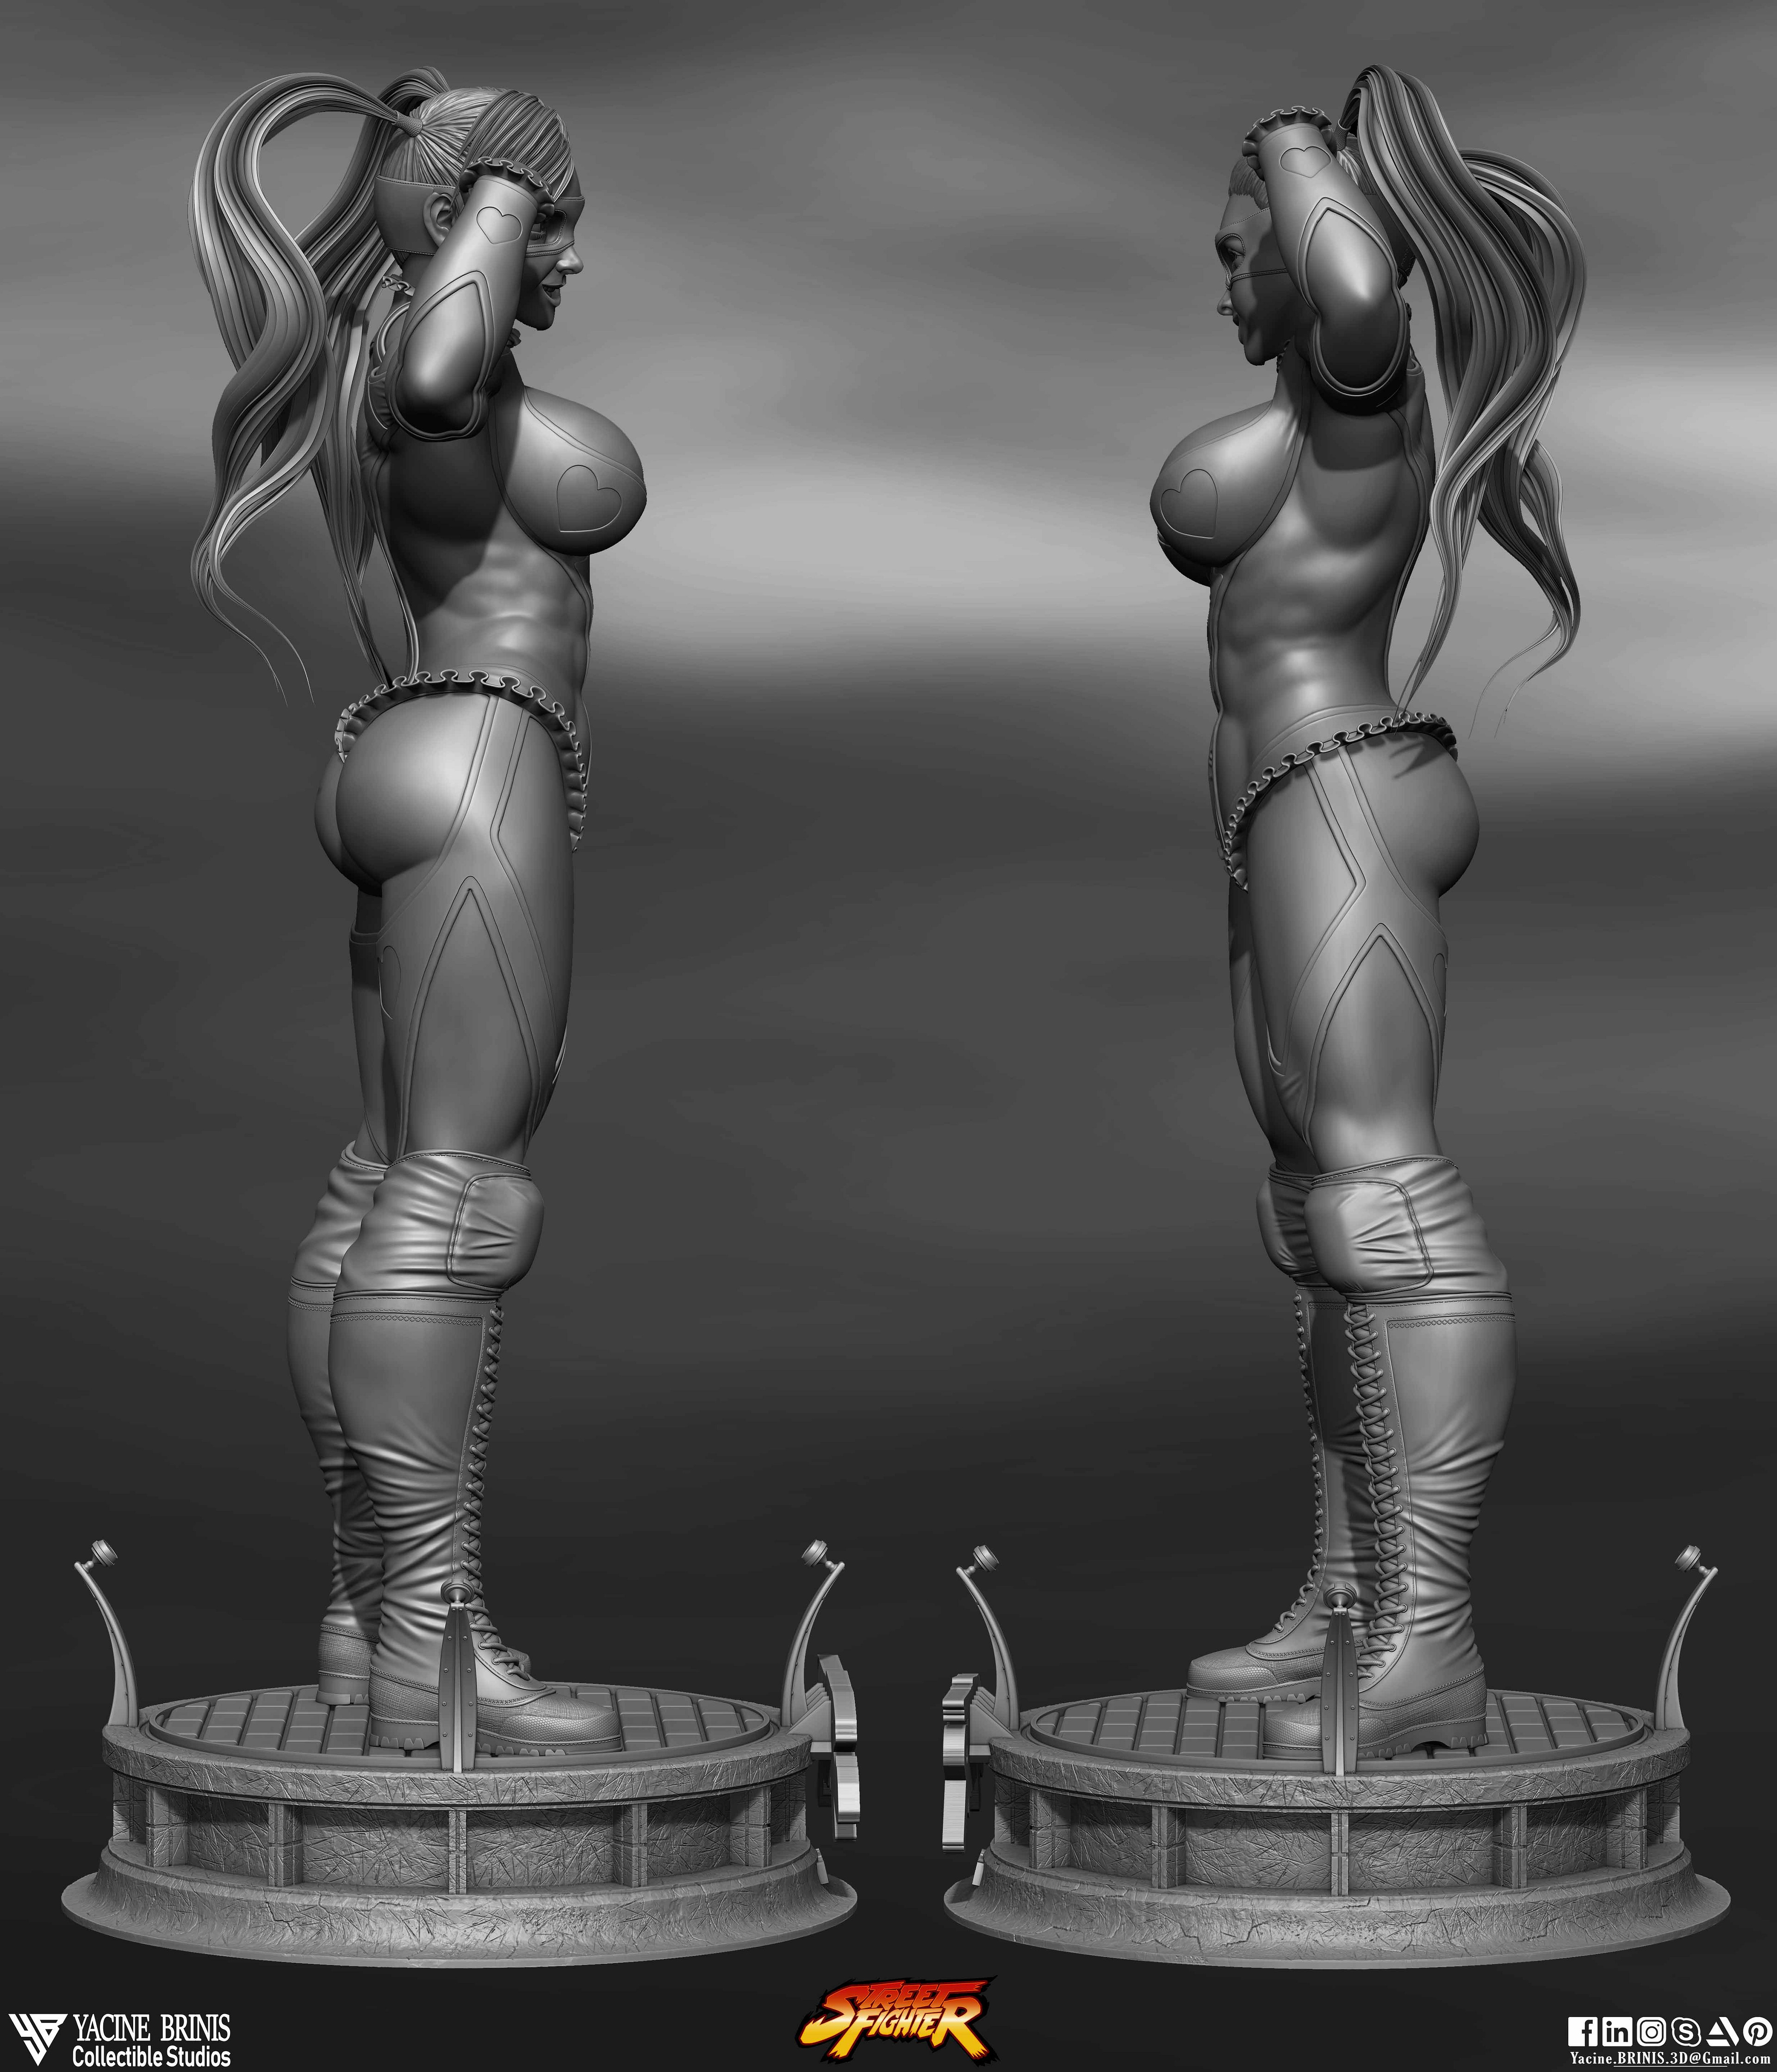 R-Mika Street Fighter-sculpted By Yacine BRINIS Set 04- R 003